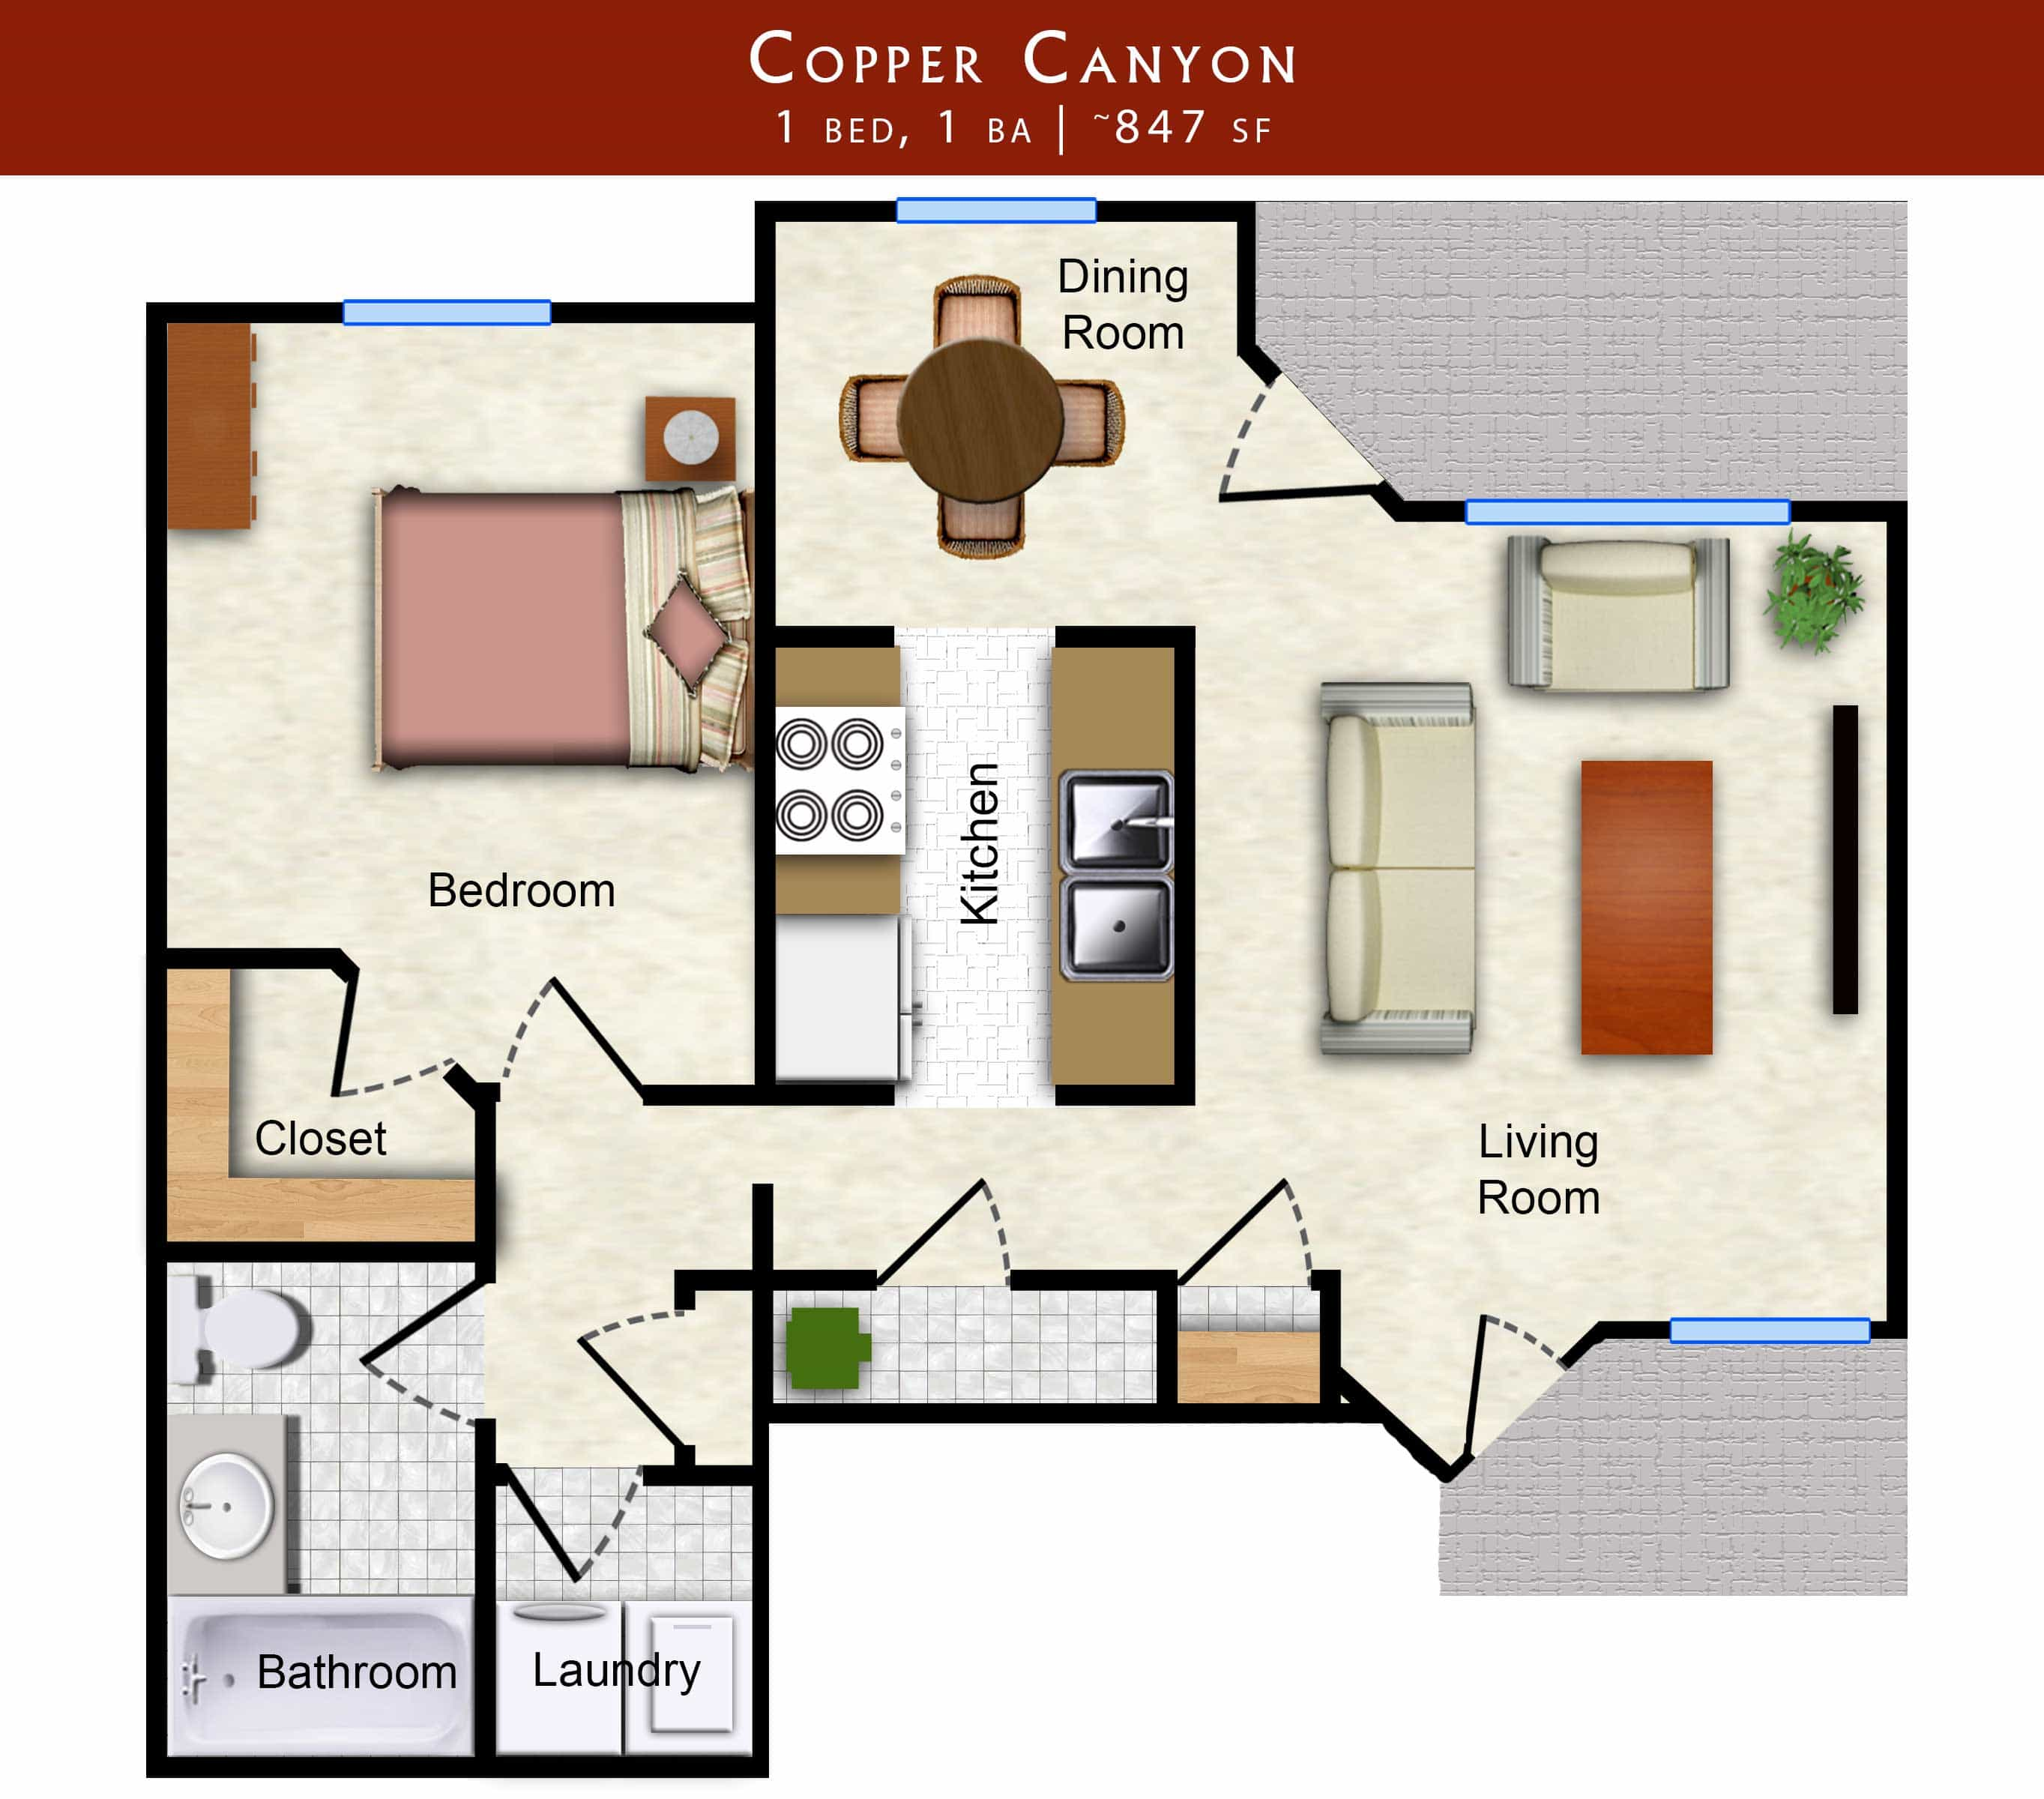 Copper Canyon Floor Plan